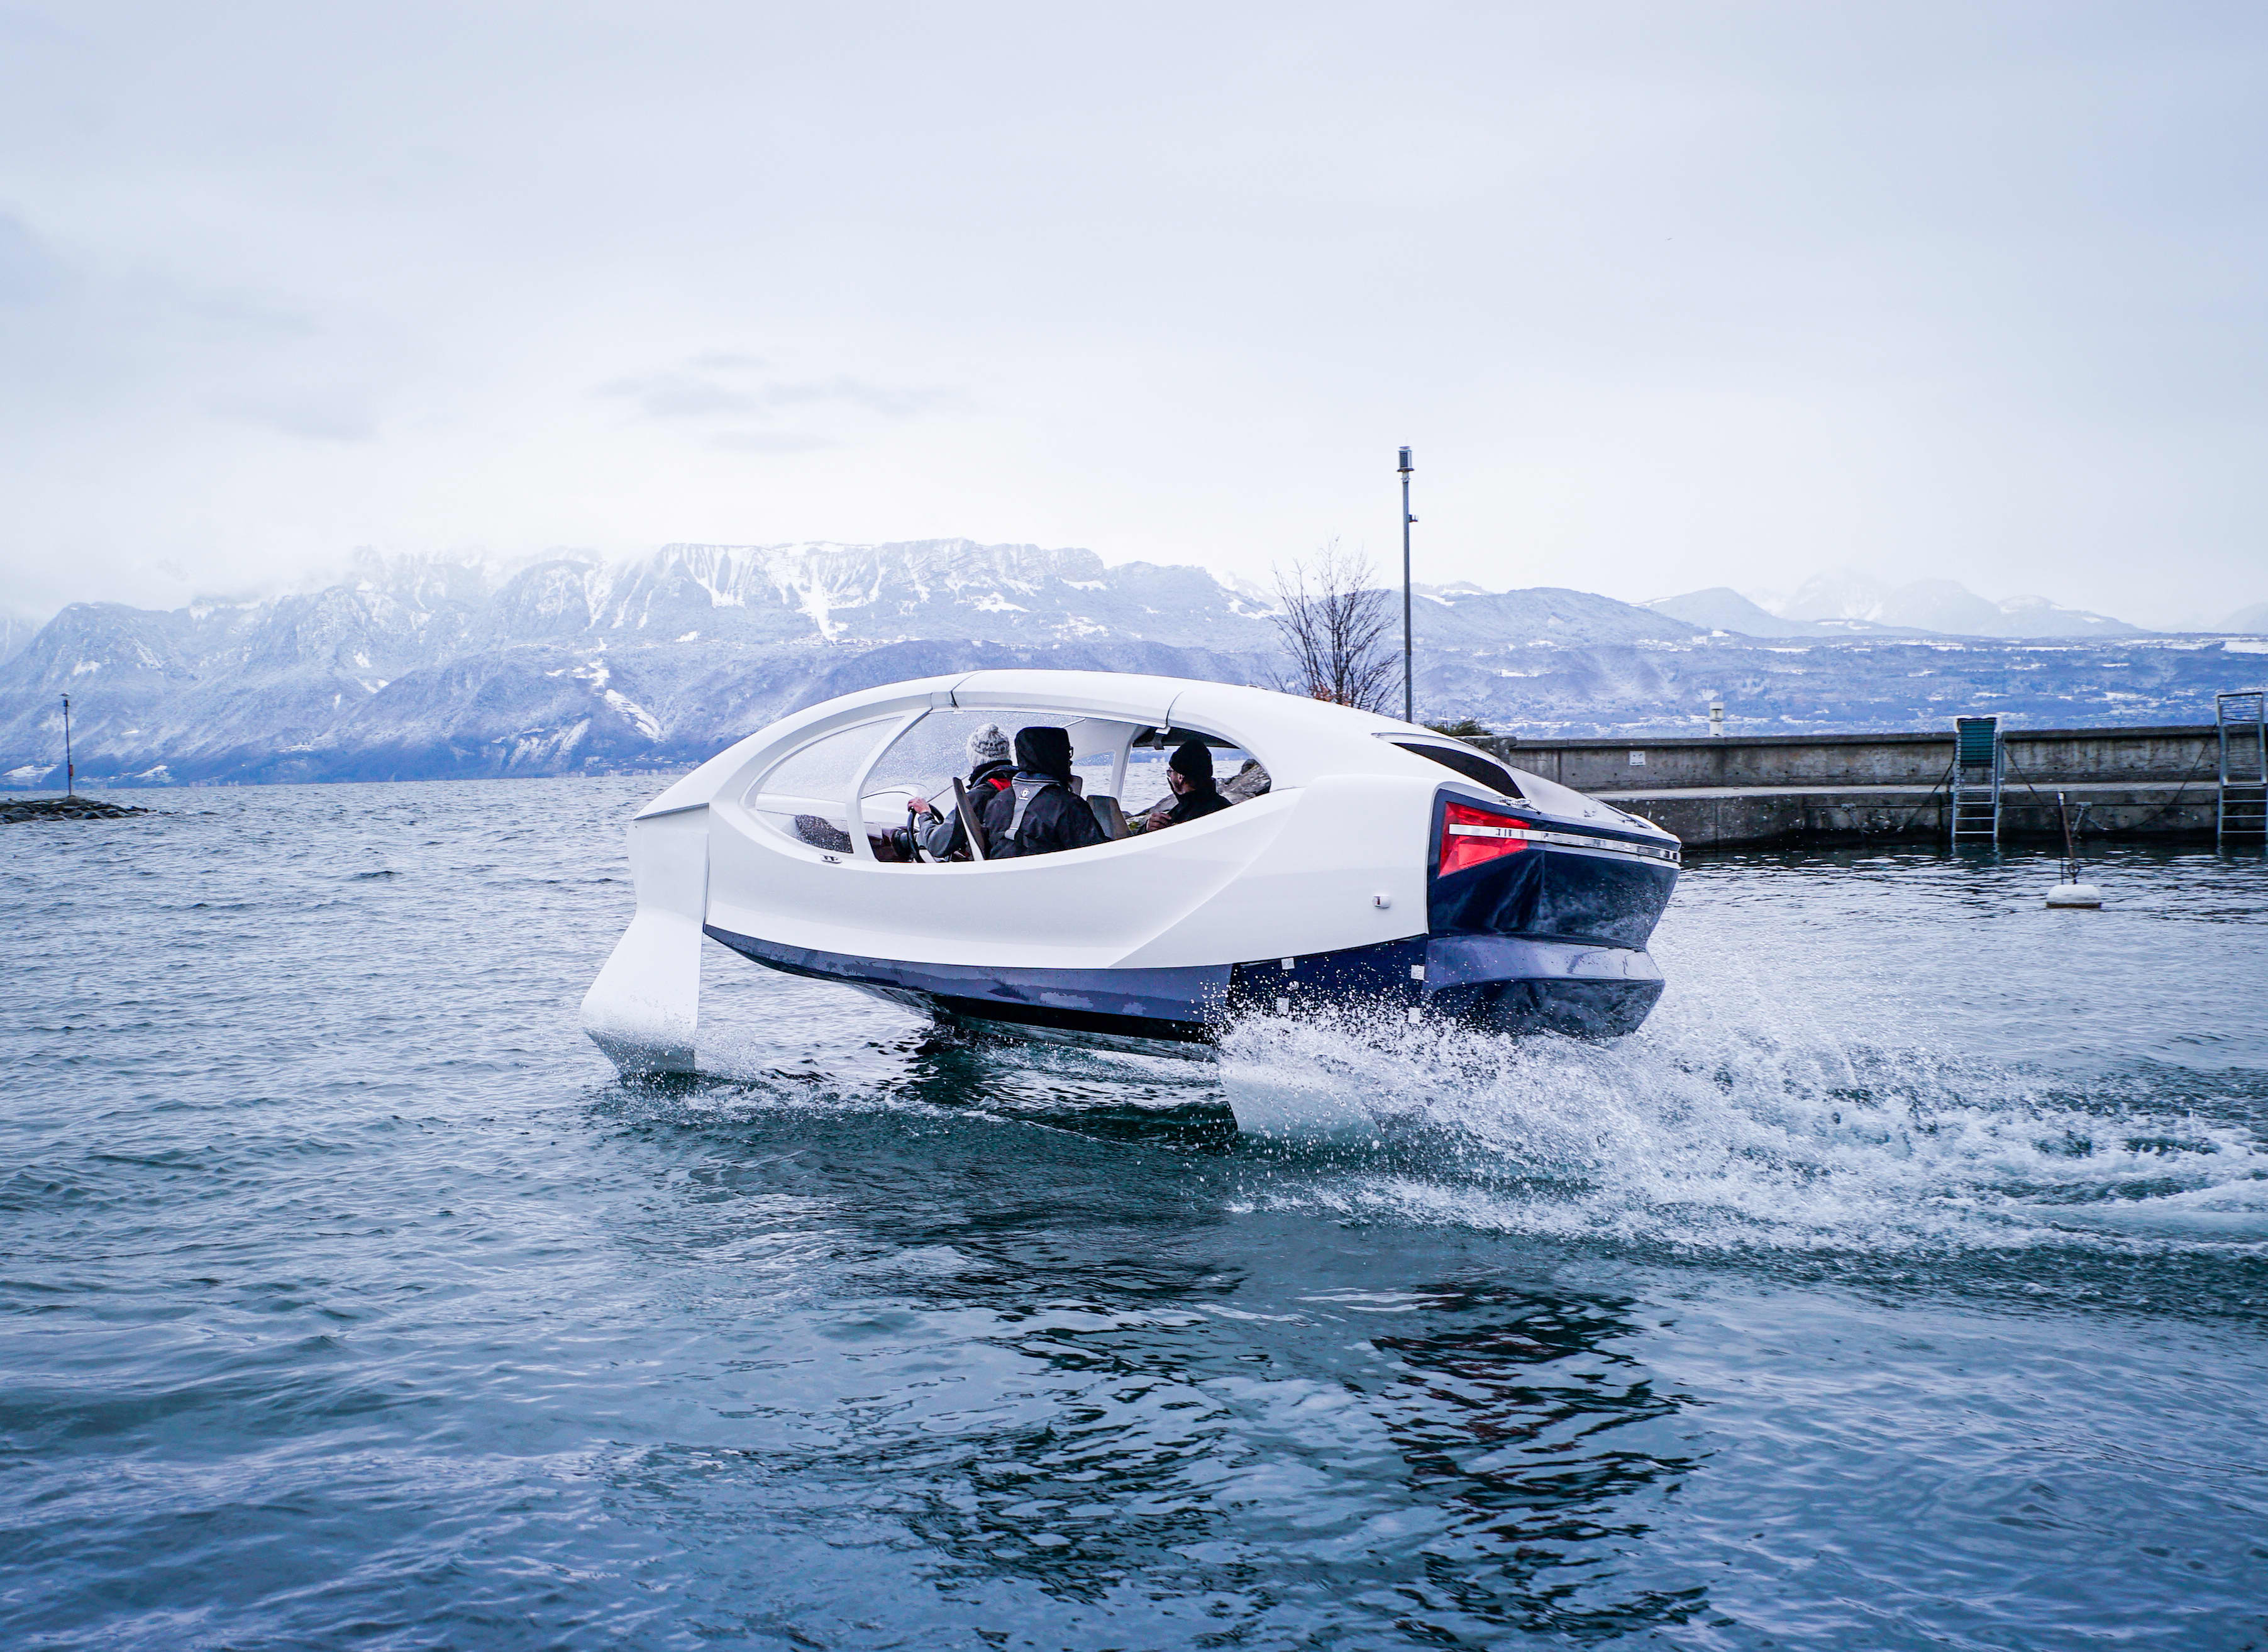 SeaBubbles' hydrofoil taxi could save you from sitting in